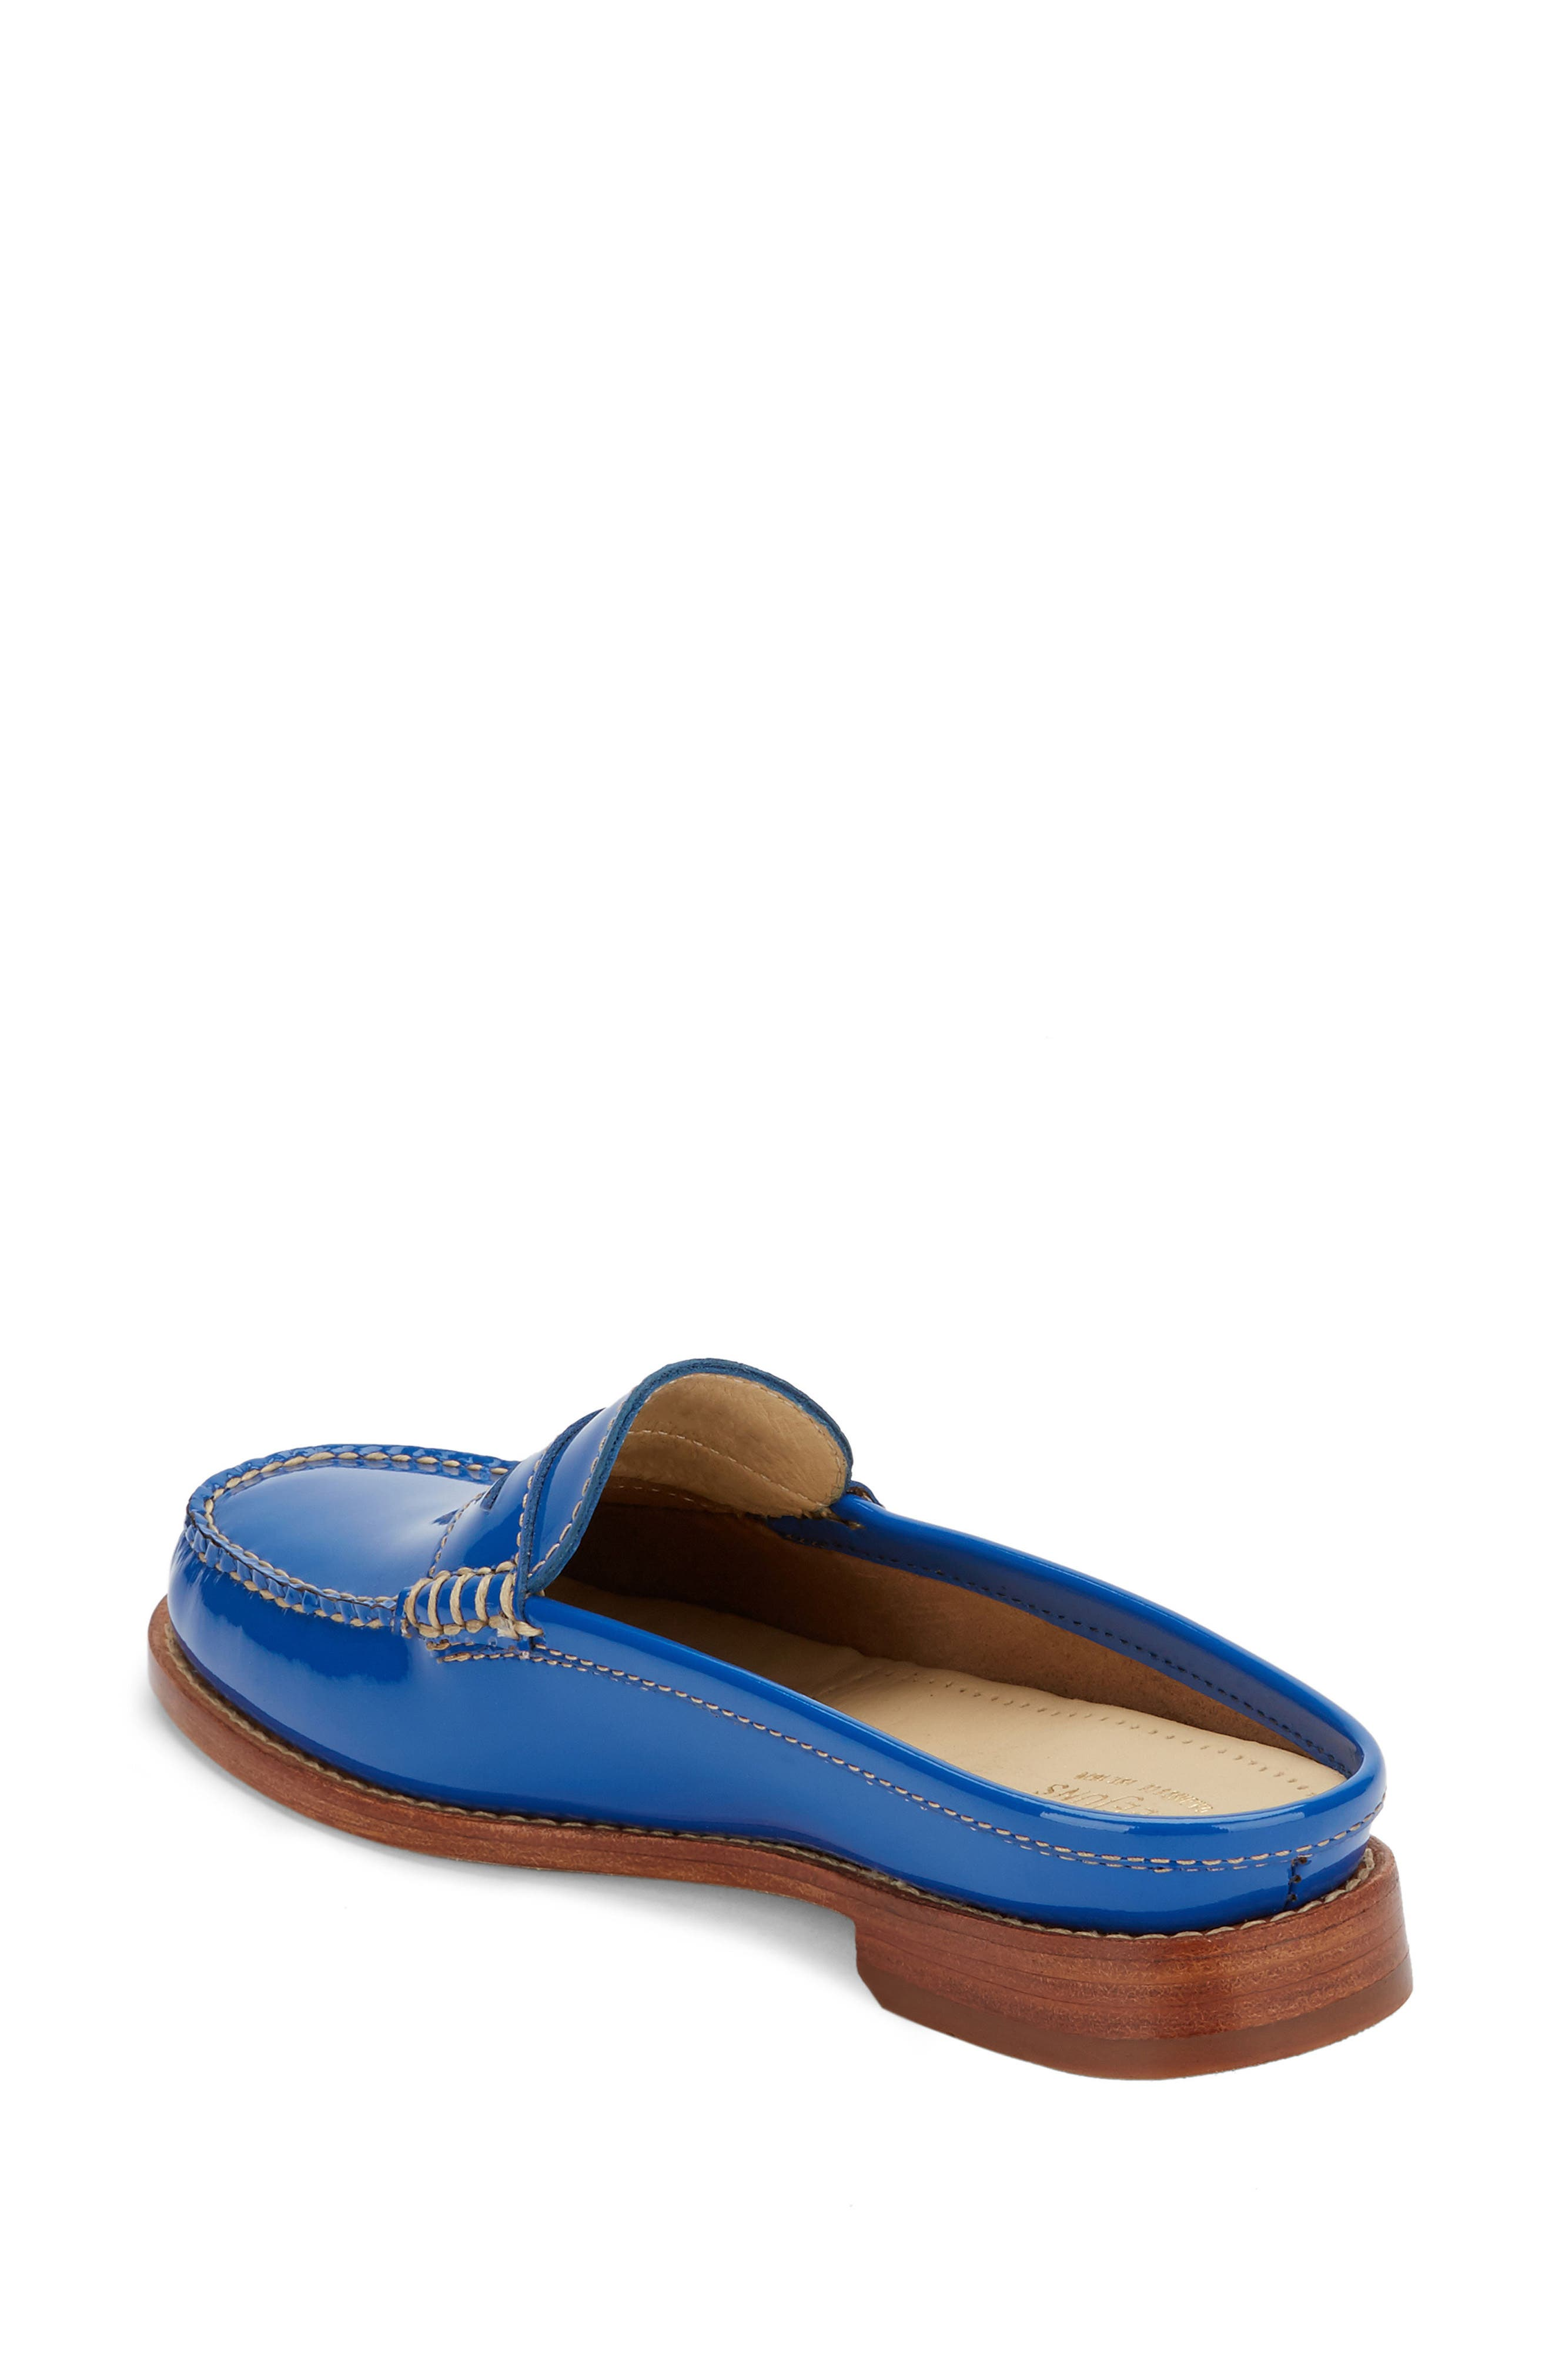 Wynn Loafer Mule,                             Alternate thumbnail 47, color,